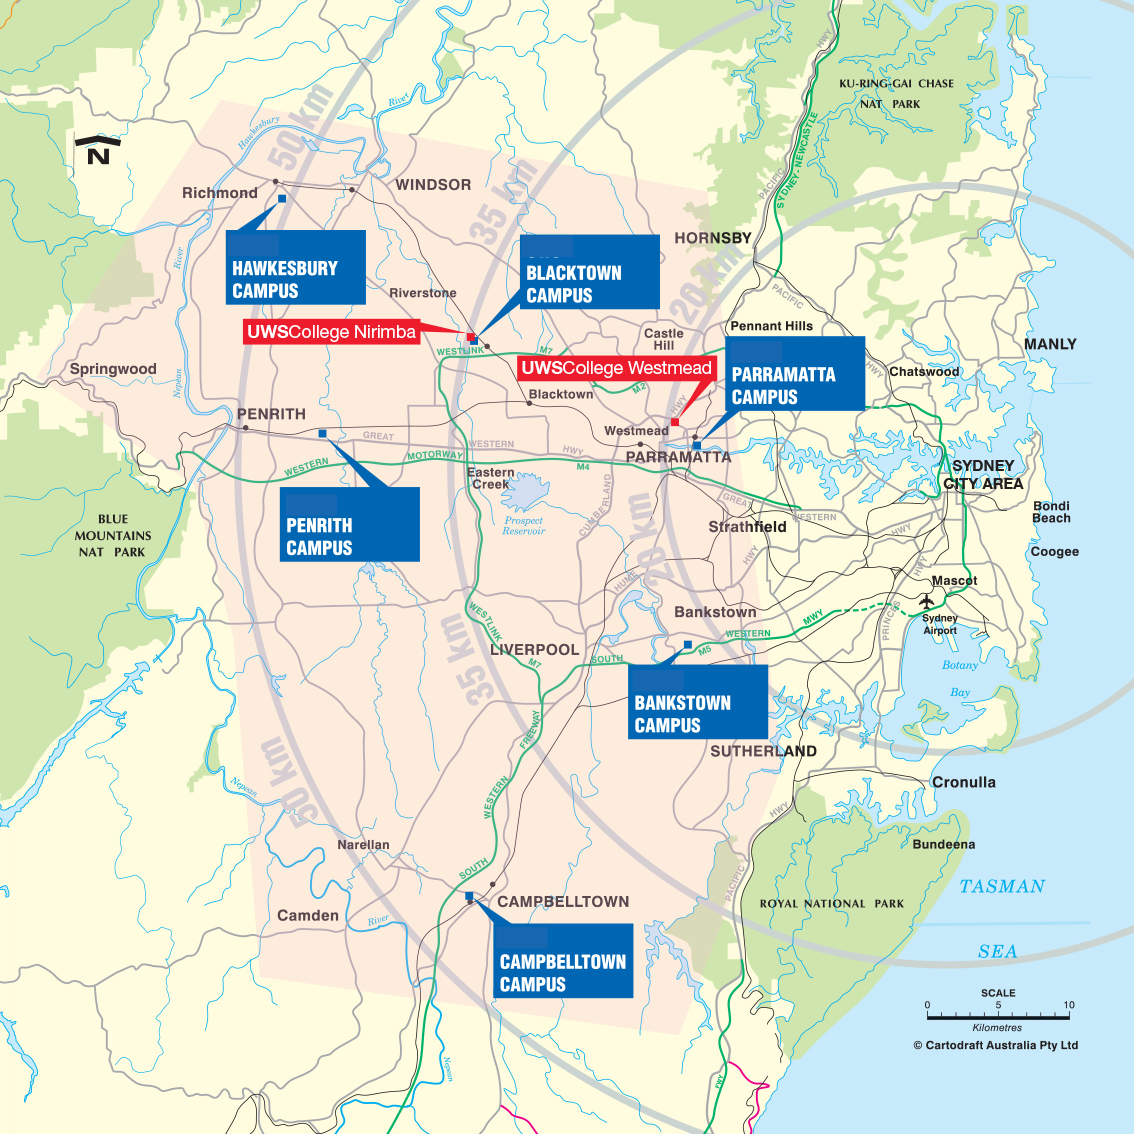 view a map of the location of greater western sydney jpg 9448 kb opens